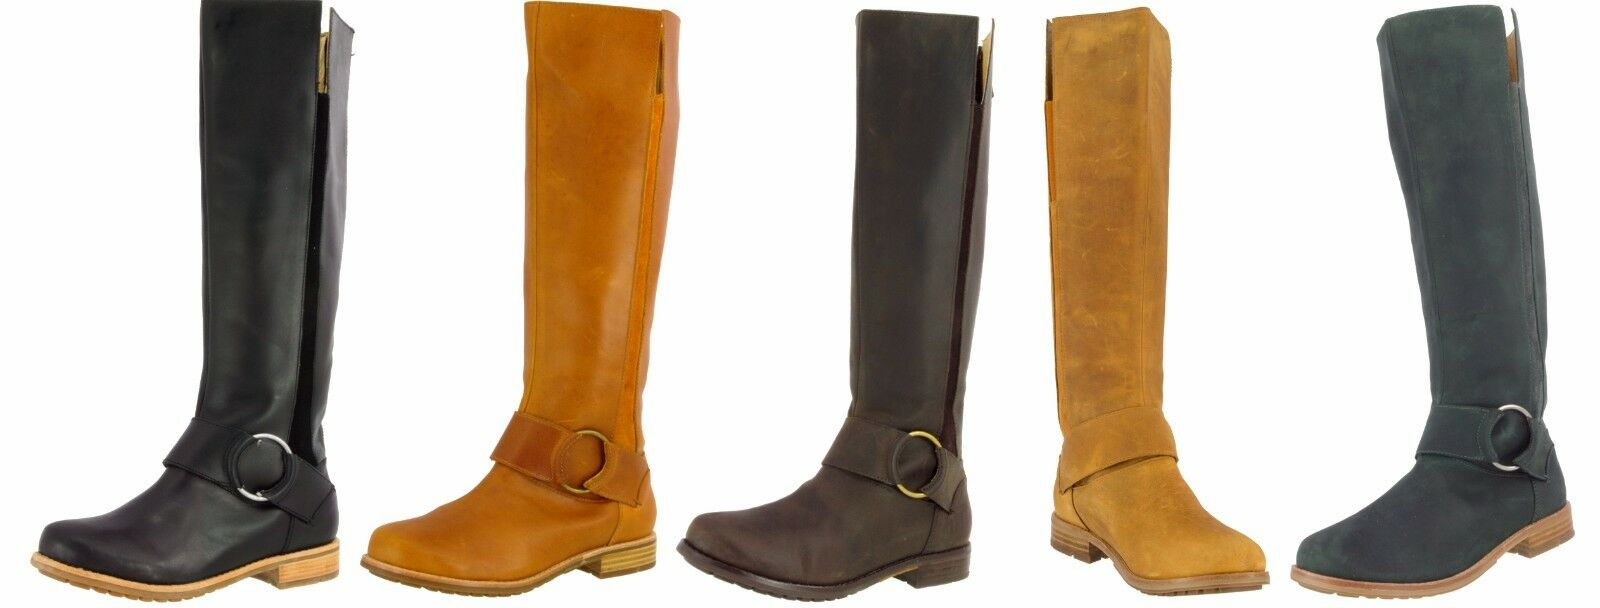 colorways incredibili OLUKAI SAMPLE donna HOLO LIO KNEE KNEE KNEE HIGH OILED FULL GRAIN LEATHER stivali  US 7  risparmia fino al 70%